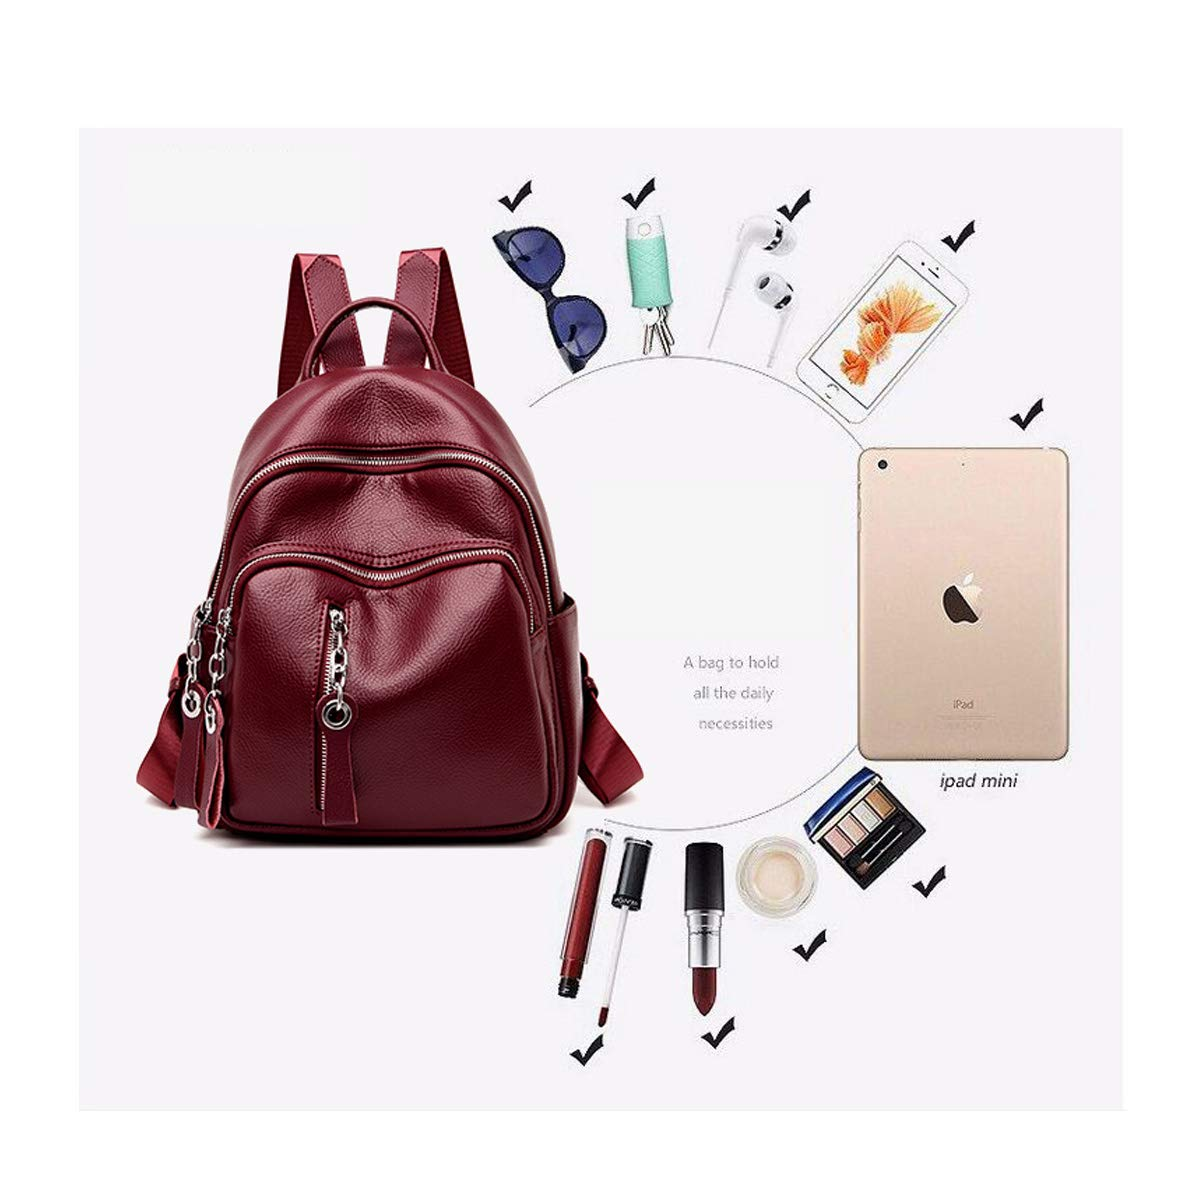 PU Leather Haoyushangmao Girls Multi-Purpose Backpack for Daily Travel//Outdoor//Travel//School//Work//Fashion//Leisure Five Colors Stylish and Practical. Color : Blue, Size : 25cm31cm12cm